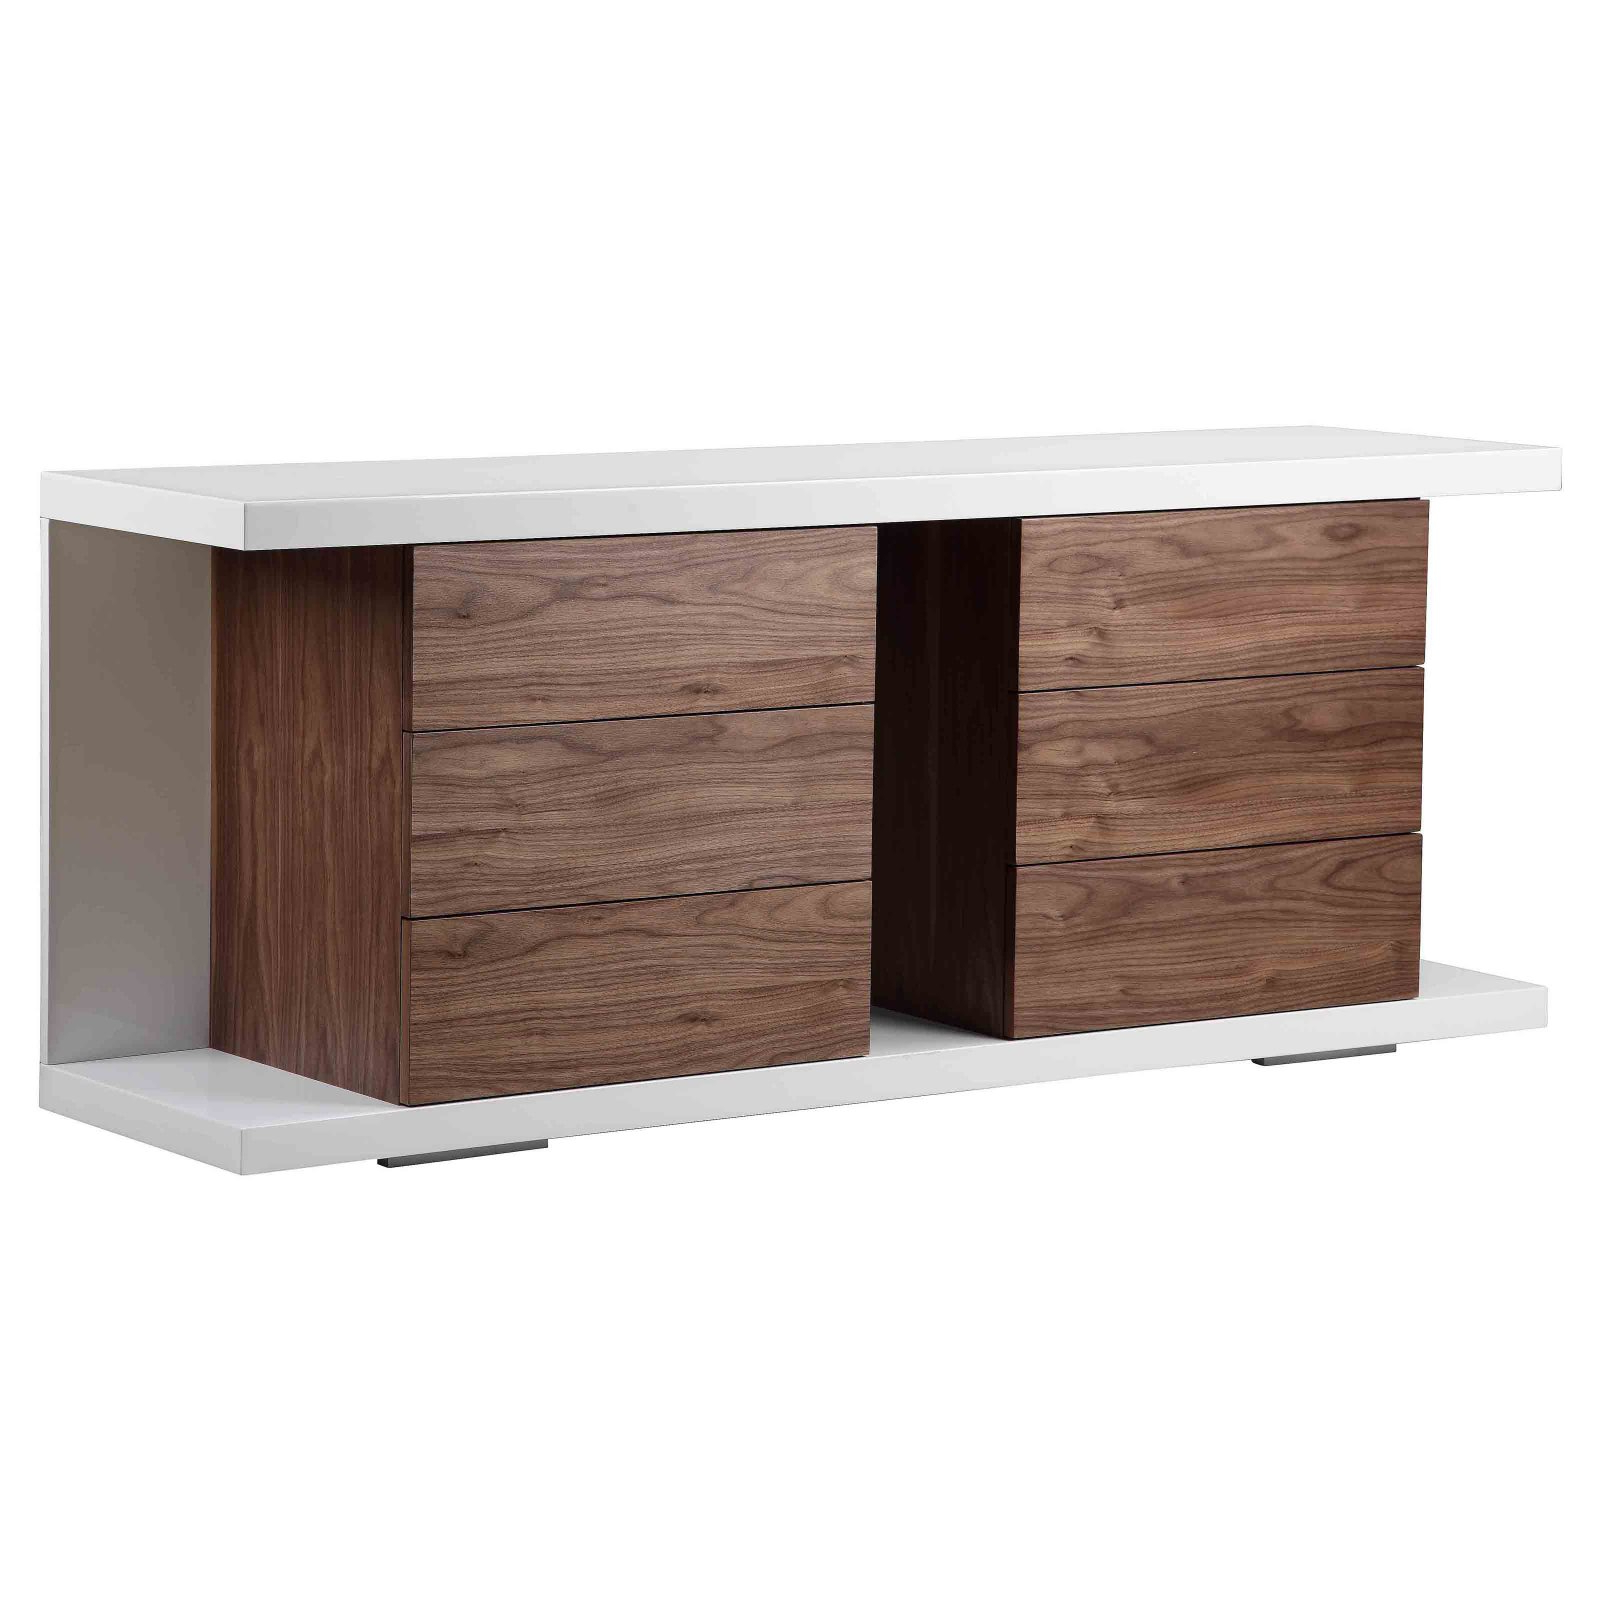 Thite Night Stand (white/walnut)pangea Home On Gilt Home Regarding Thite Sideboards (View 10 of 20)